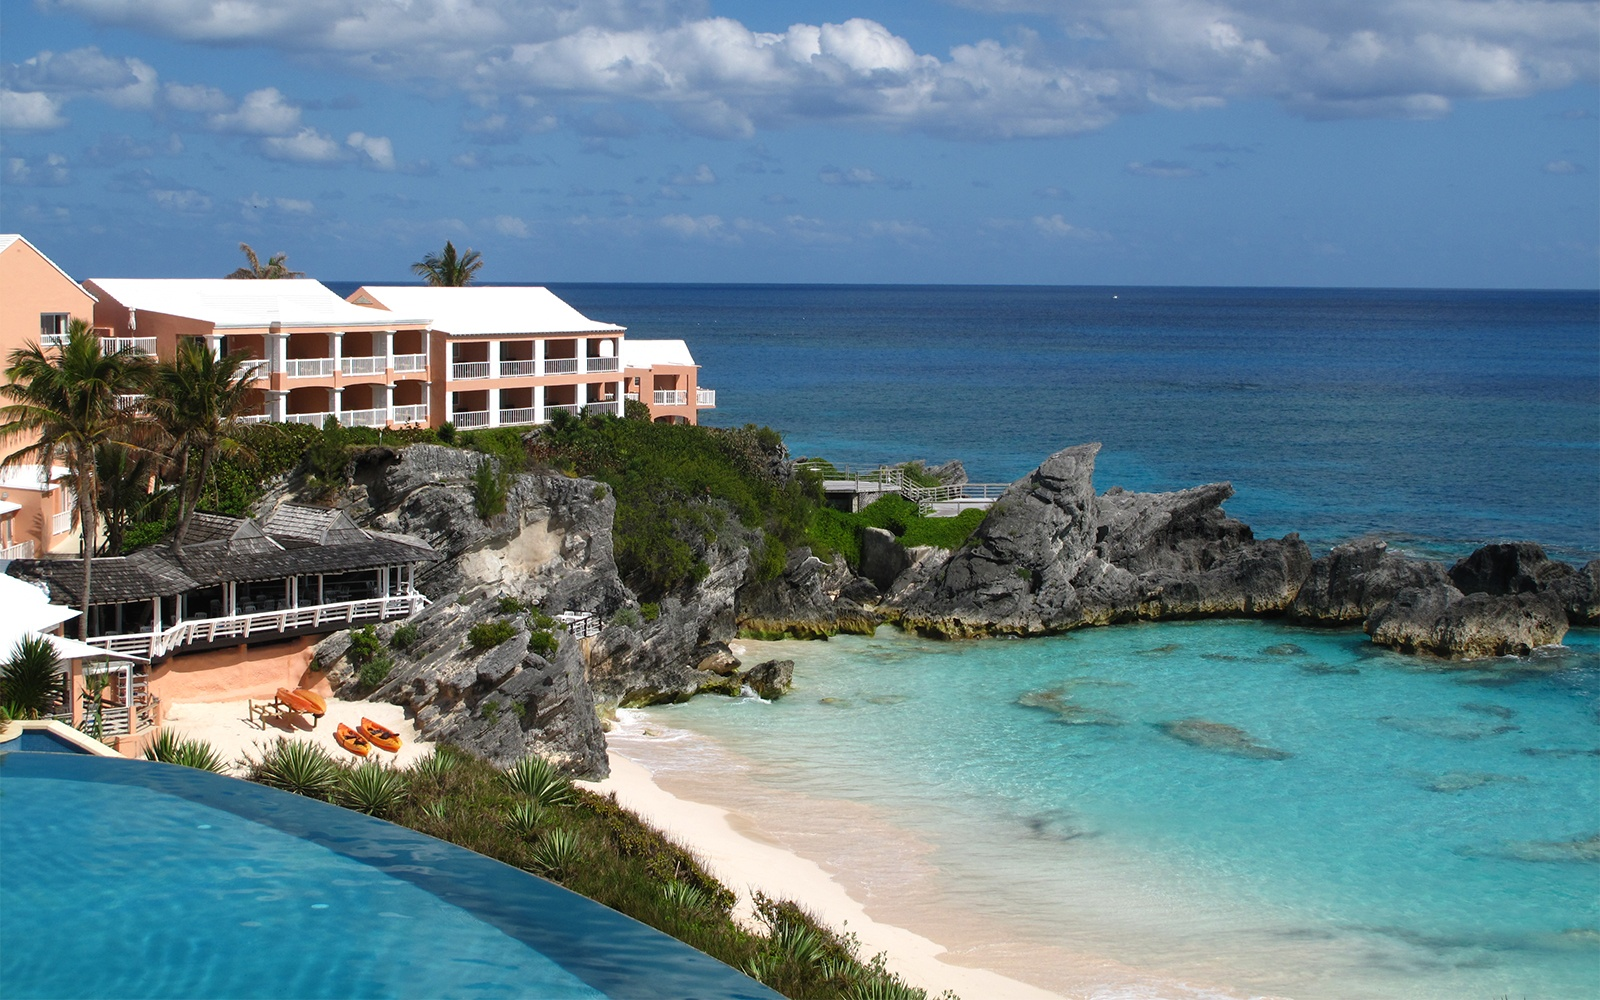 No. 3: The Reefs Resort & Club, Bermuda